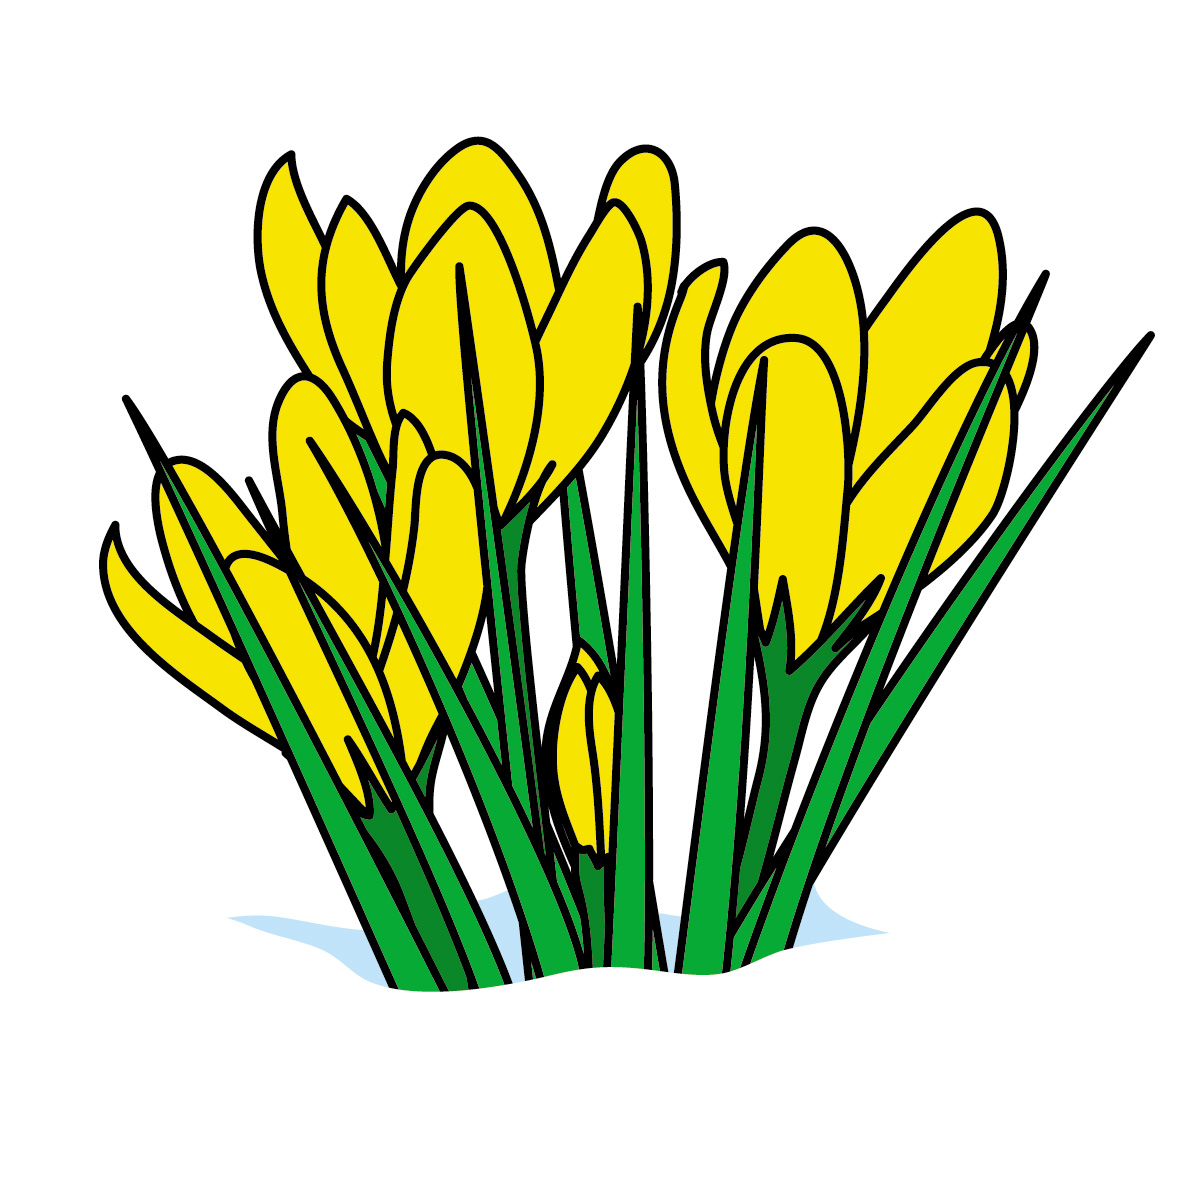 1200x1200 Spring Flowers Flower Clipart Free Images 2